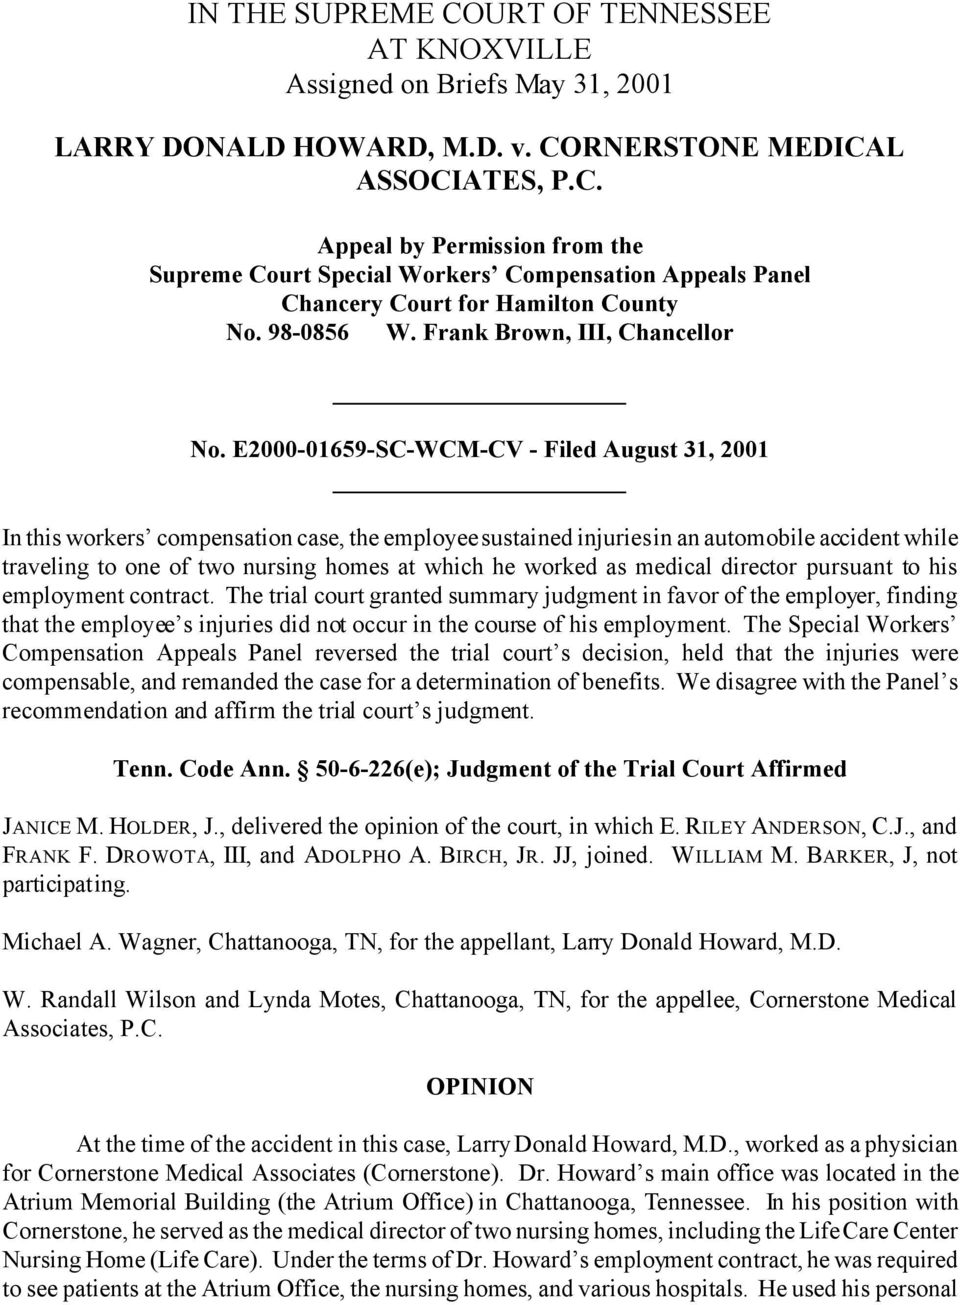 E2000-01659-SC-WCM-CV - Filed August 31, 2001 In this workers compensation case, the employee sustained injuries in an automobile accident while traveling to one of two nursing homes at which he